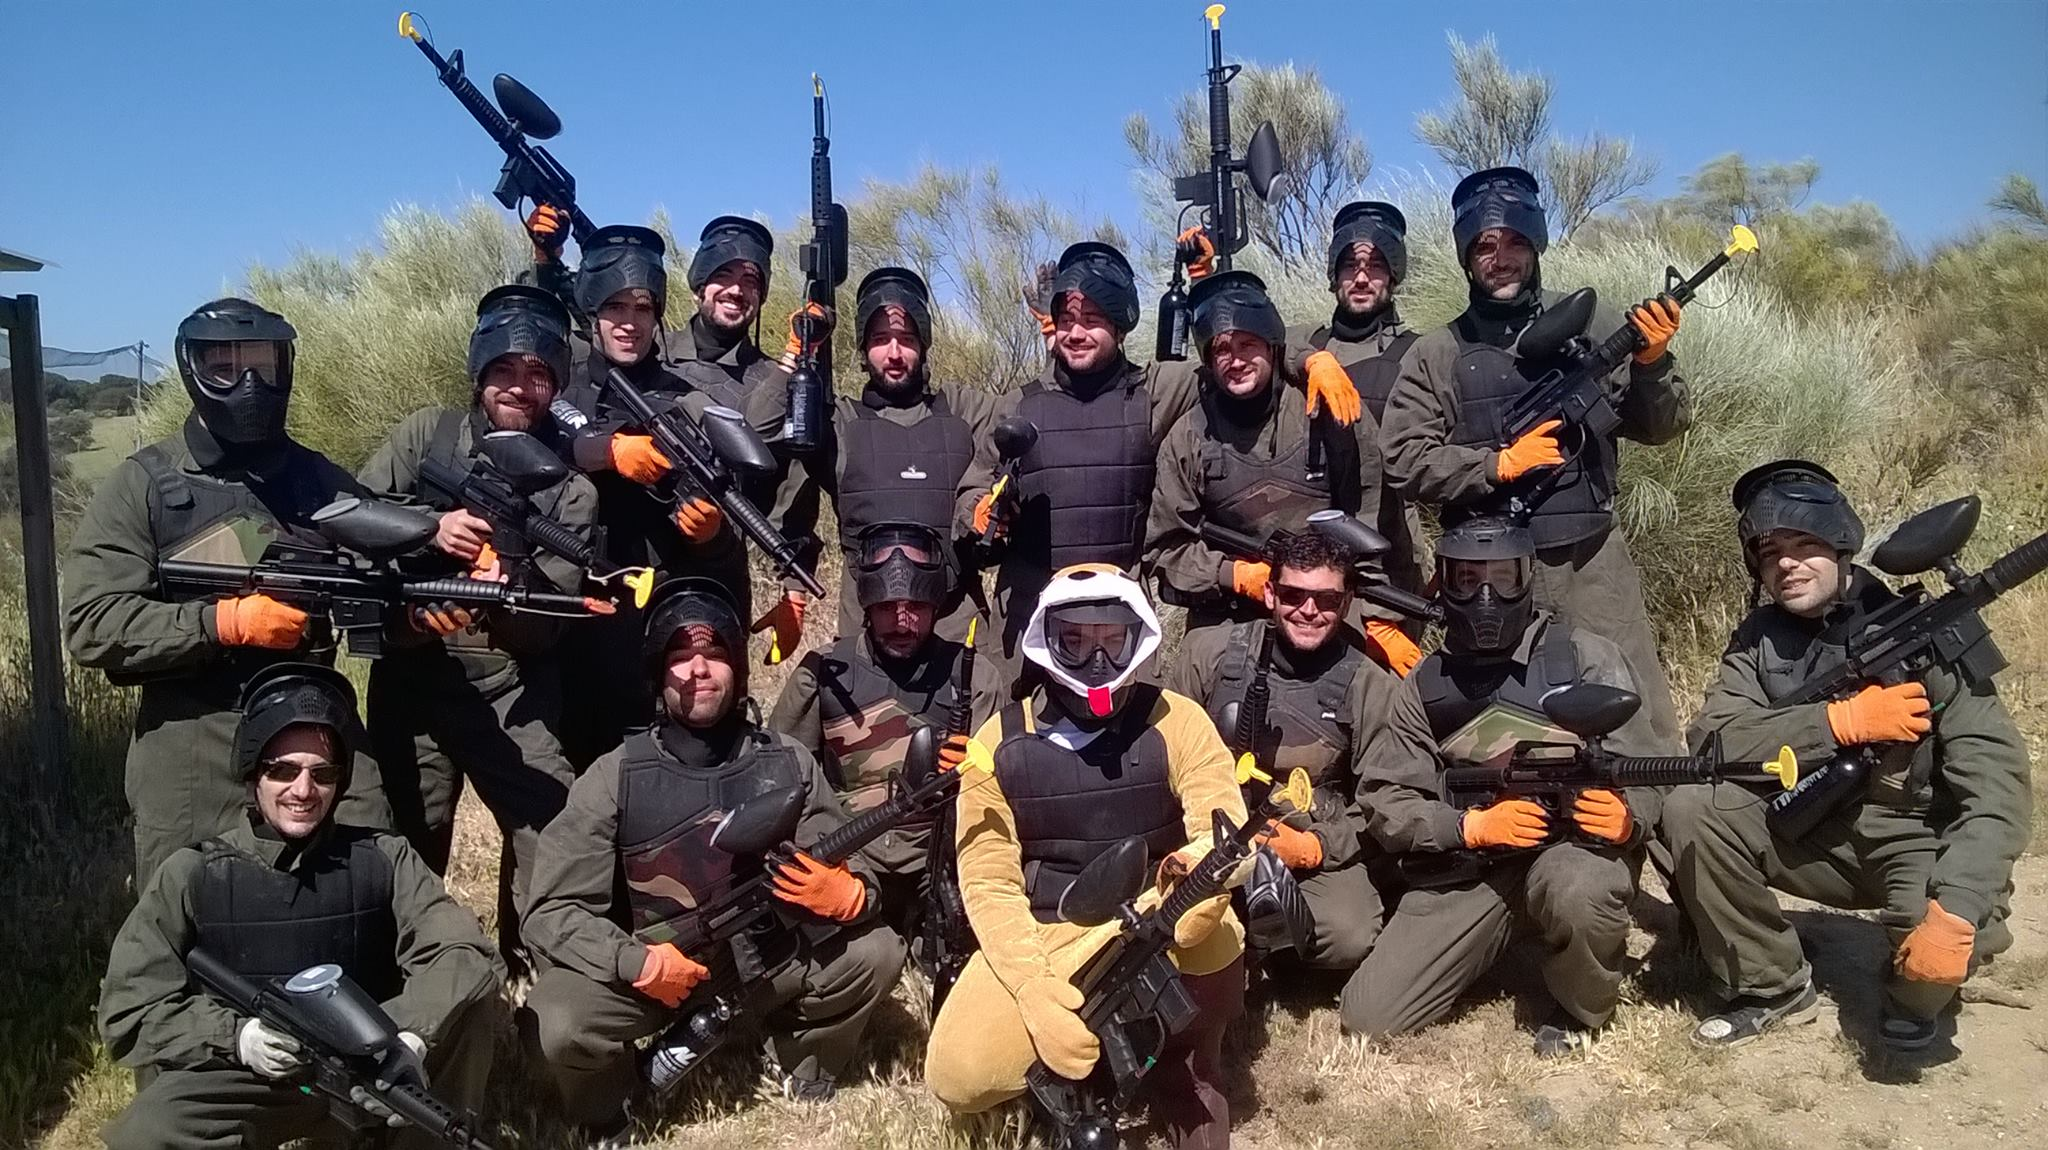 Click to enlarge image despedida-soltero-paintball-madrid.jpg